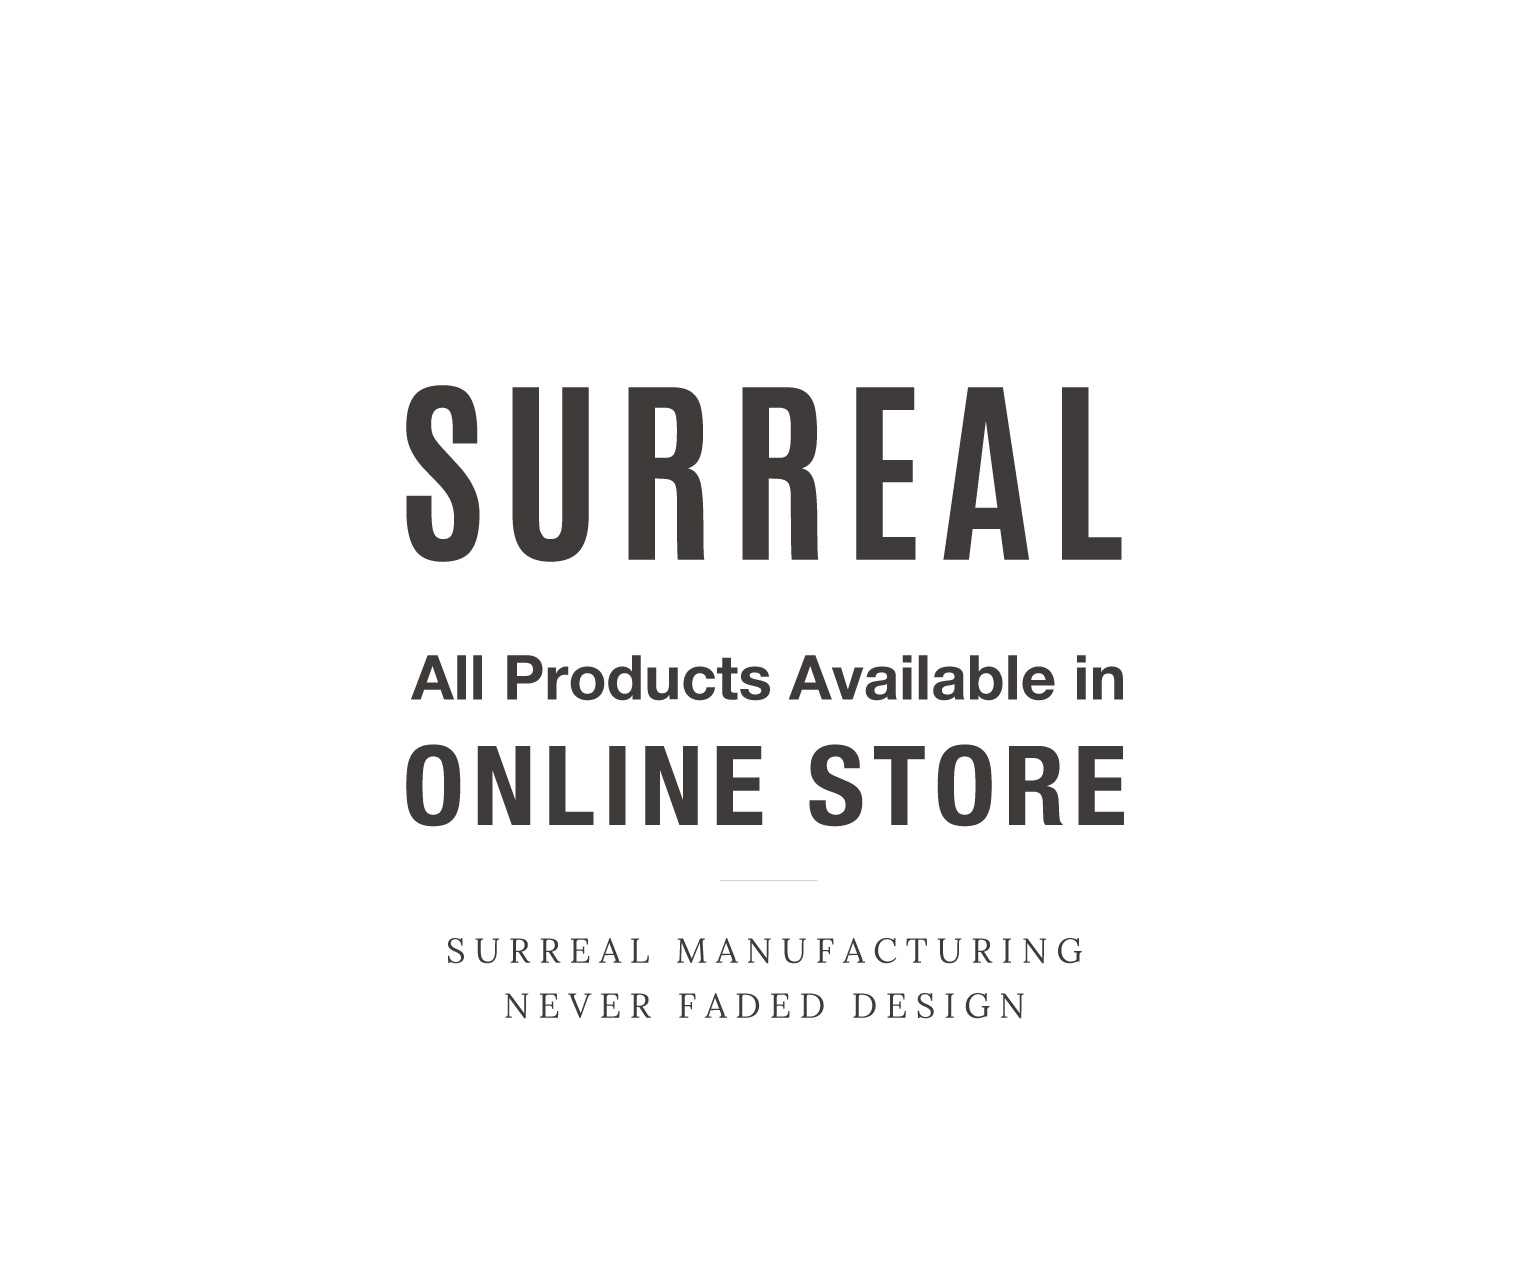 SURREAL ONLINE STORE